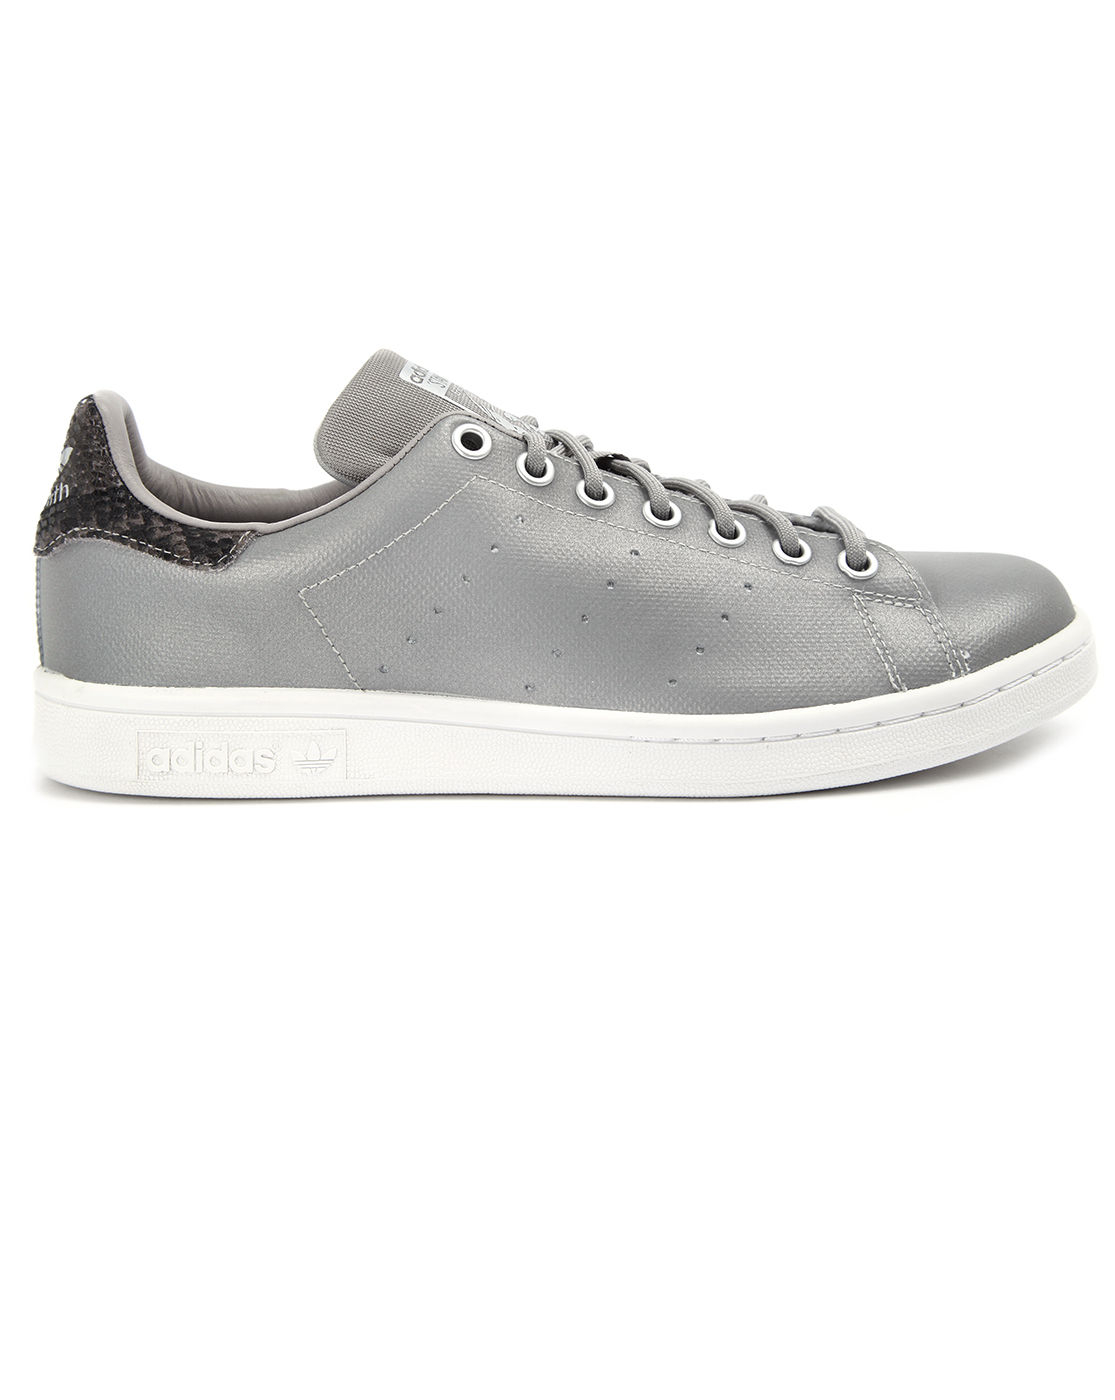 Adidas Stan Smith Grey Women